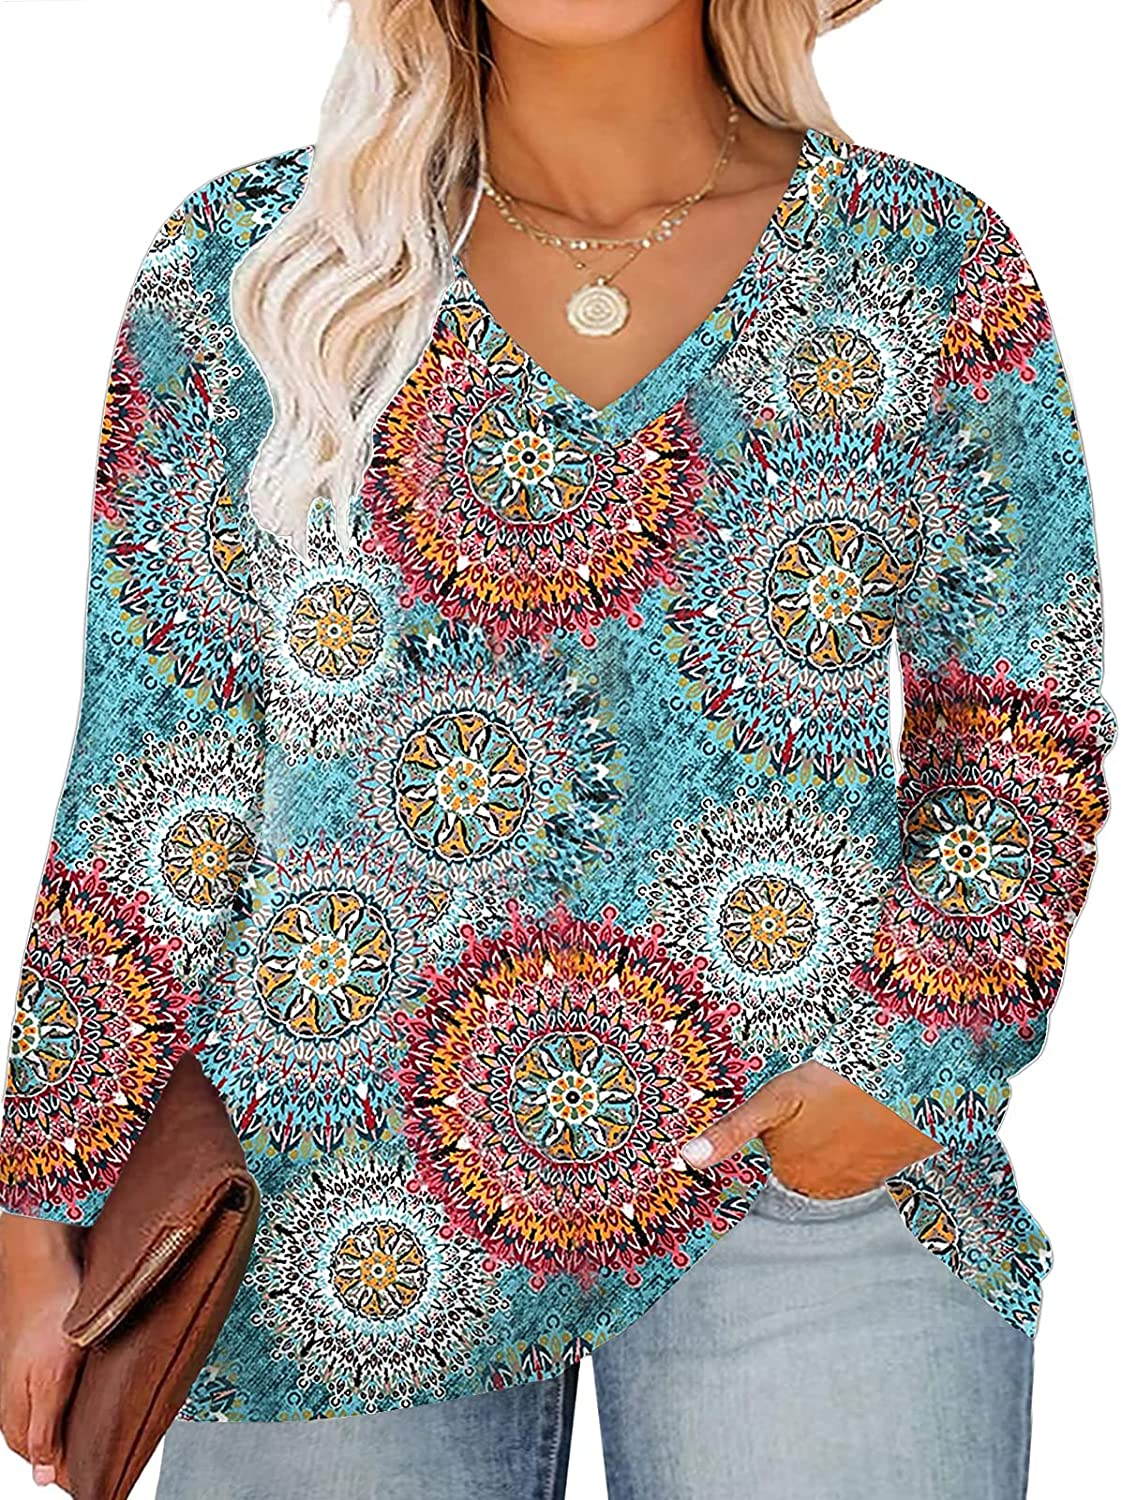 ROSRISS Plus Size Tops for Women Long Sleeve Tees V Neck Tunics Solid Color Blouse T Shirts